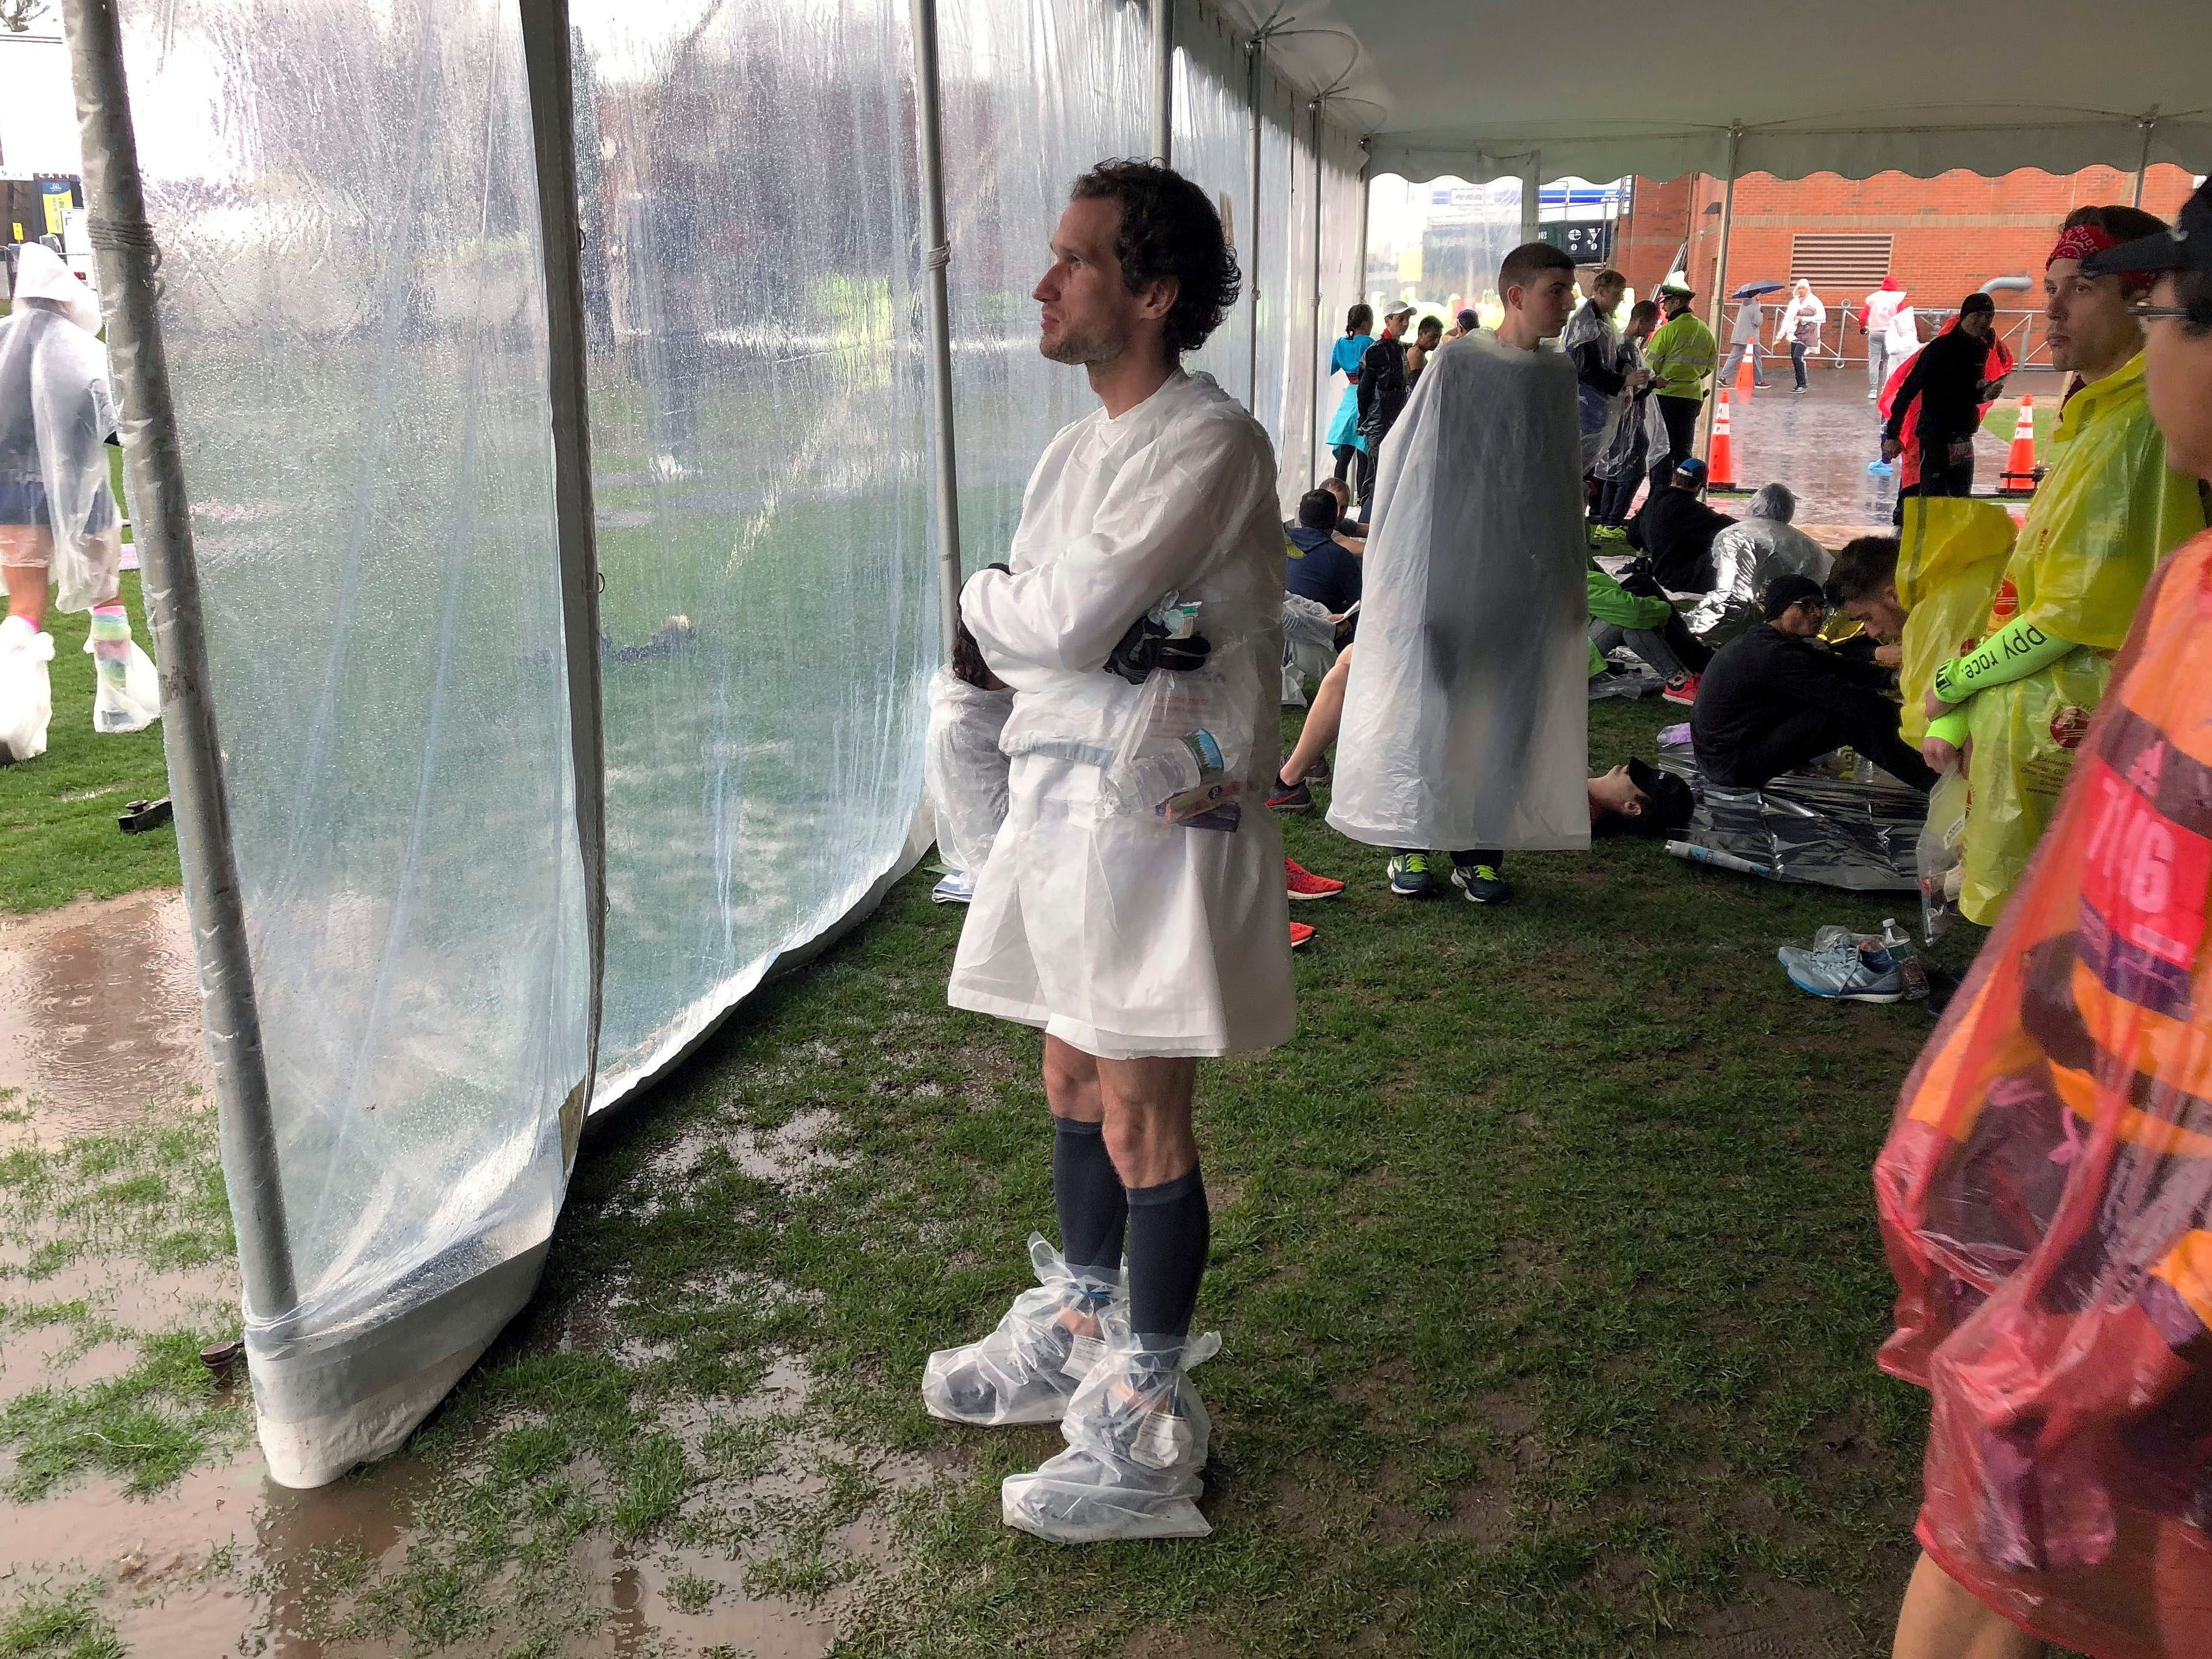 Lukas Chmatal, 35, originally from the Czech Republic and now a scientist at Massachusetts Institute of Technology, waits under a tent while it rains before the start of the 123rd Boston Marathon.